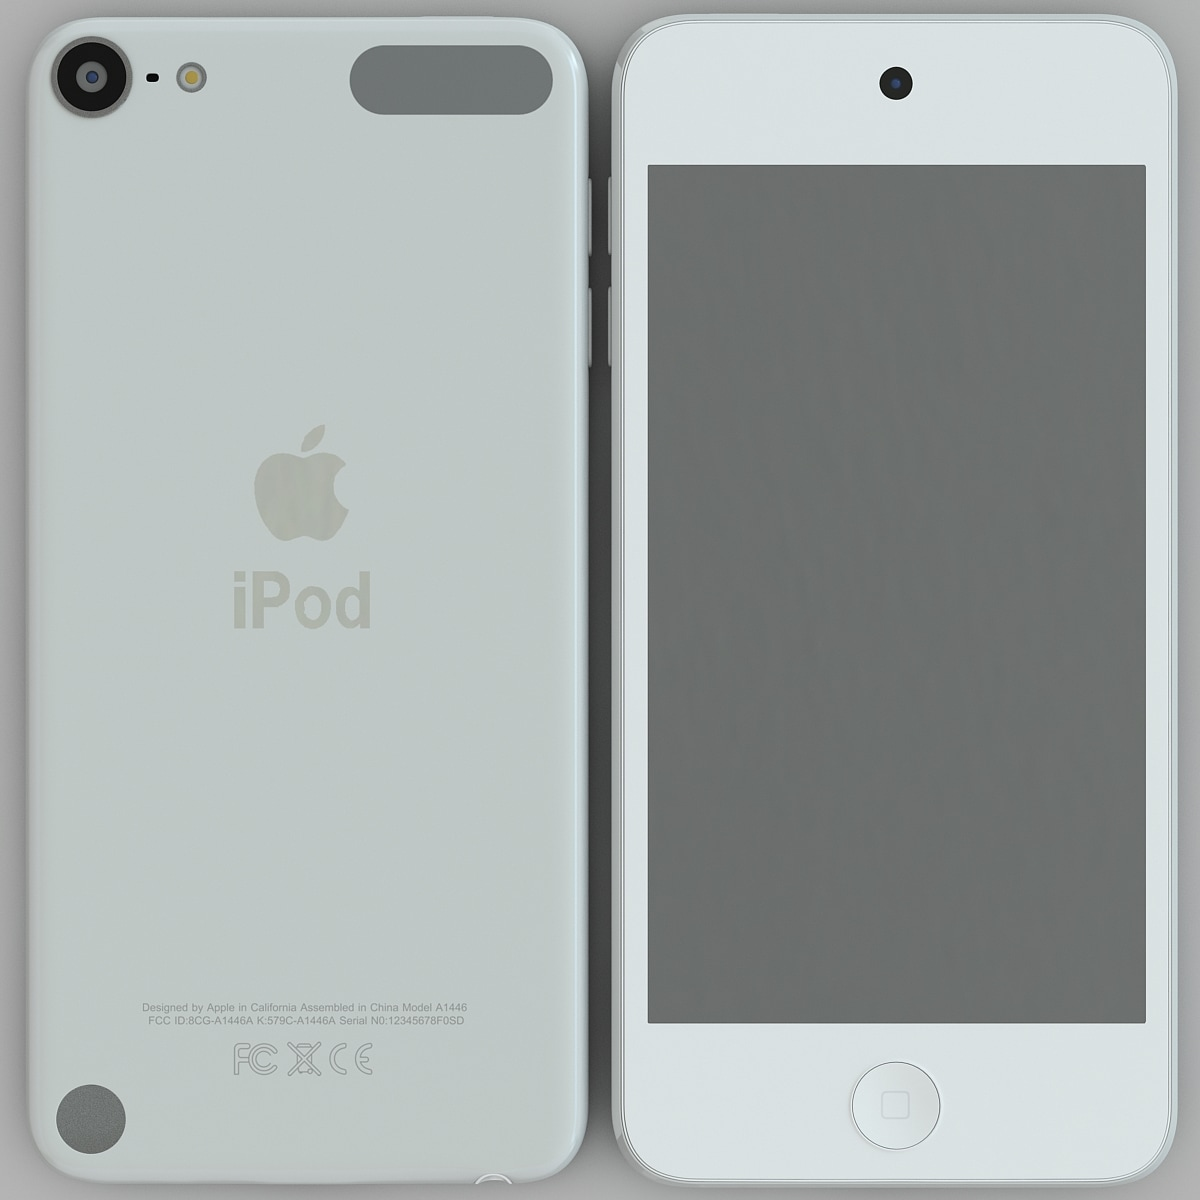 Ipod_Nano_Generation_5th_Gray_005.jpg